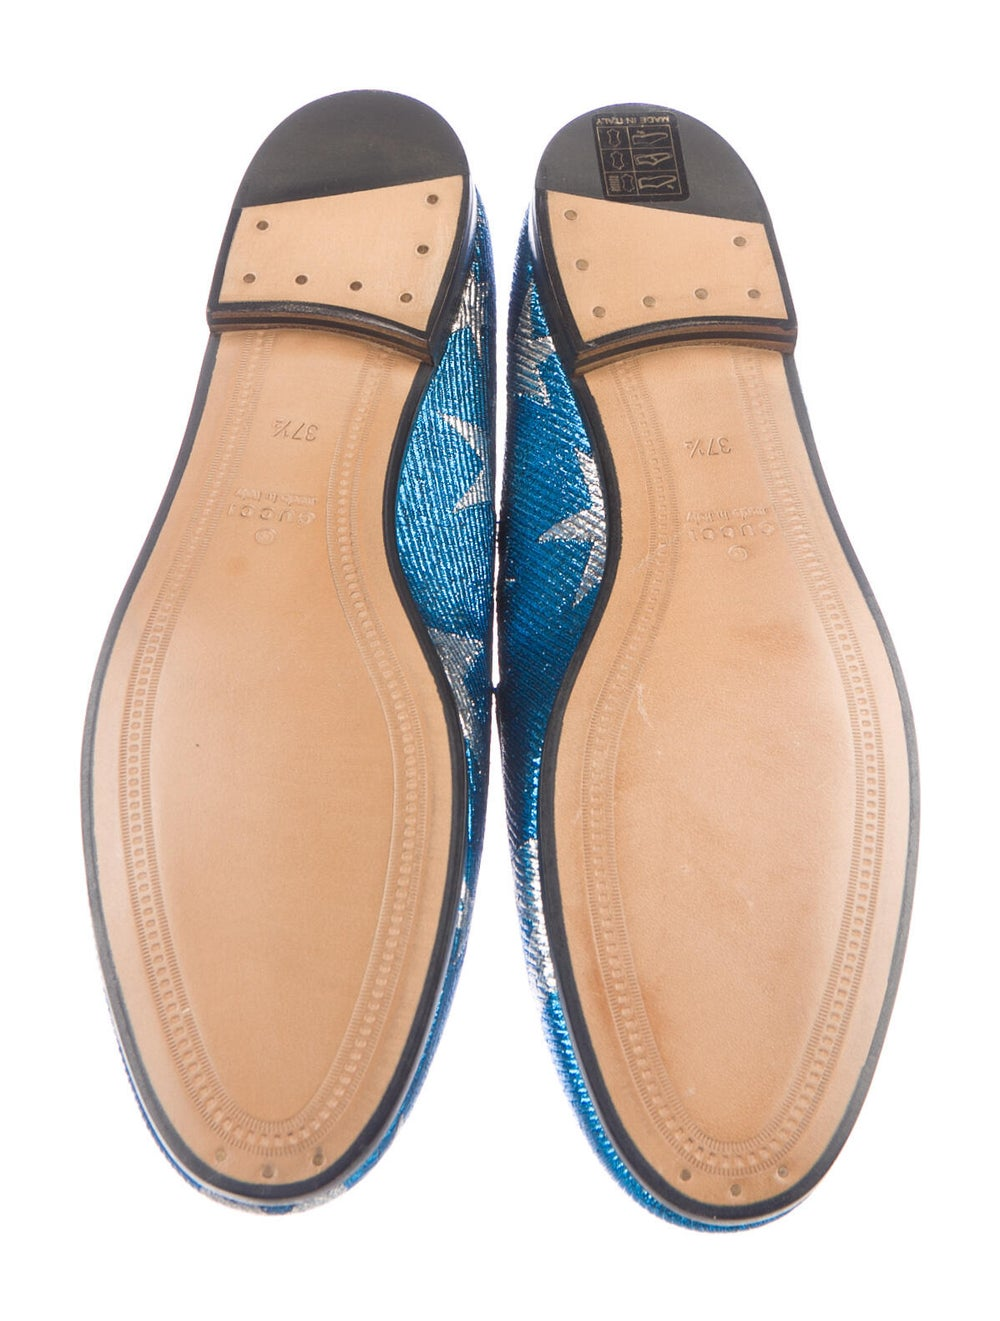 Gucci Horsebit Accent Patterned Loafers w/ Tags B… - image 5